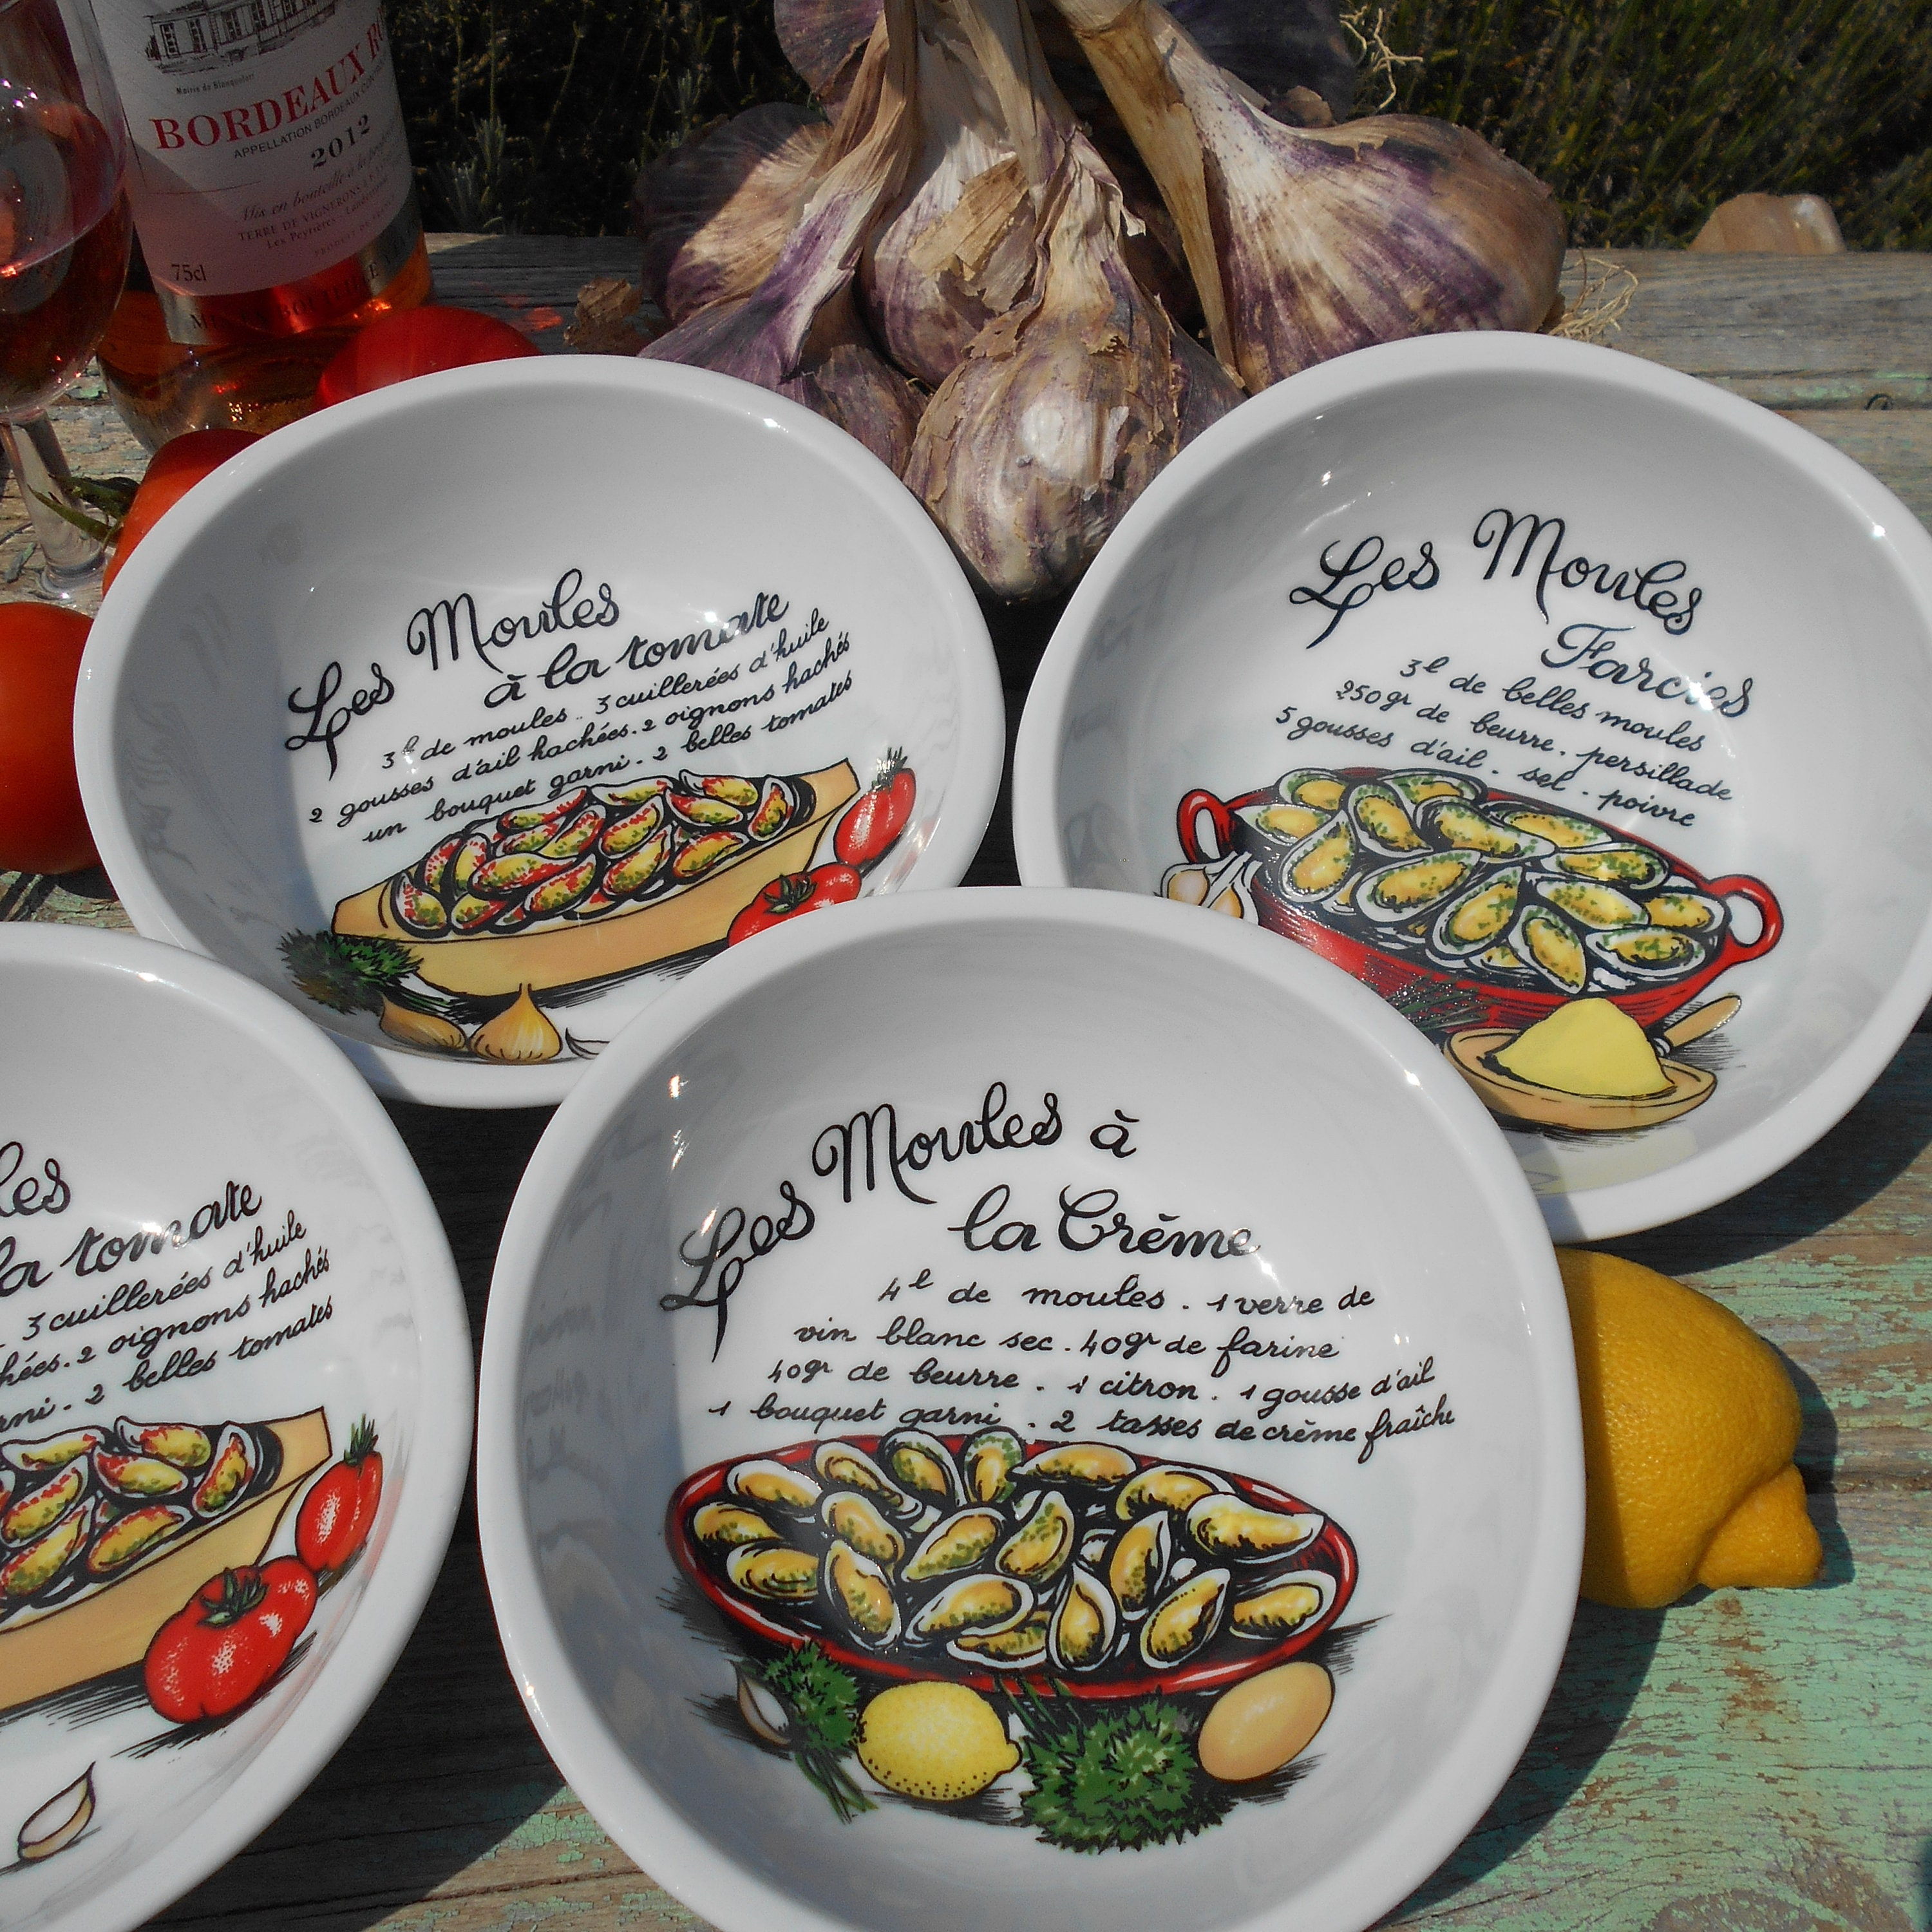 Magret Canard Foie Gras Four four french mussel (moules) recipe bowls. french moule recipe dishes from  the 1980s. pillivuyt porcelaine.